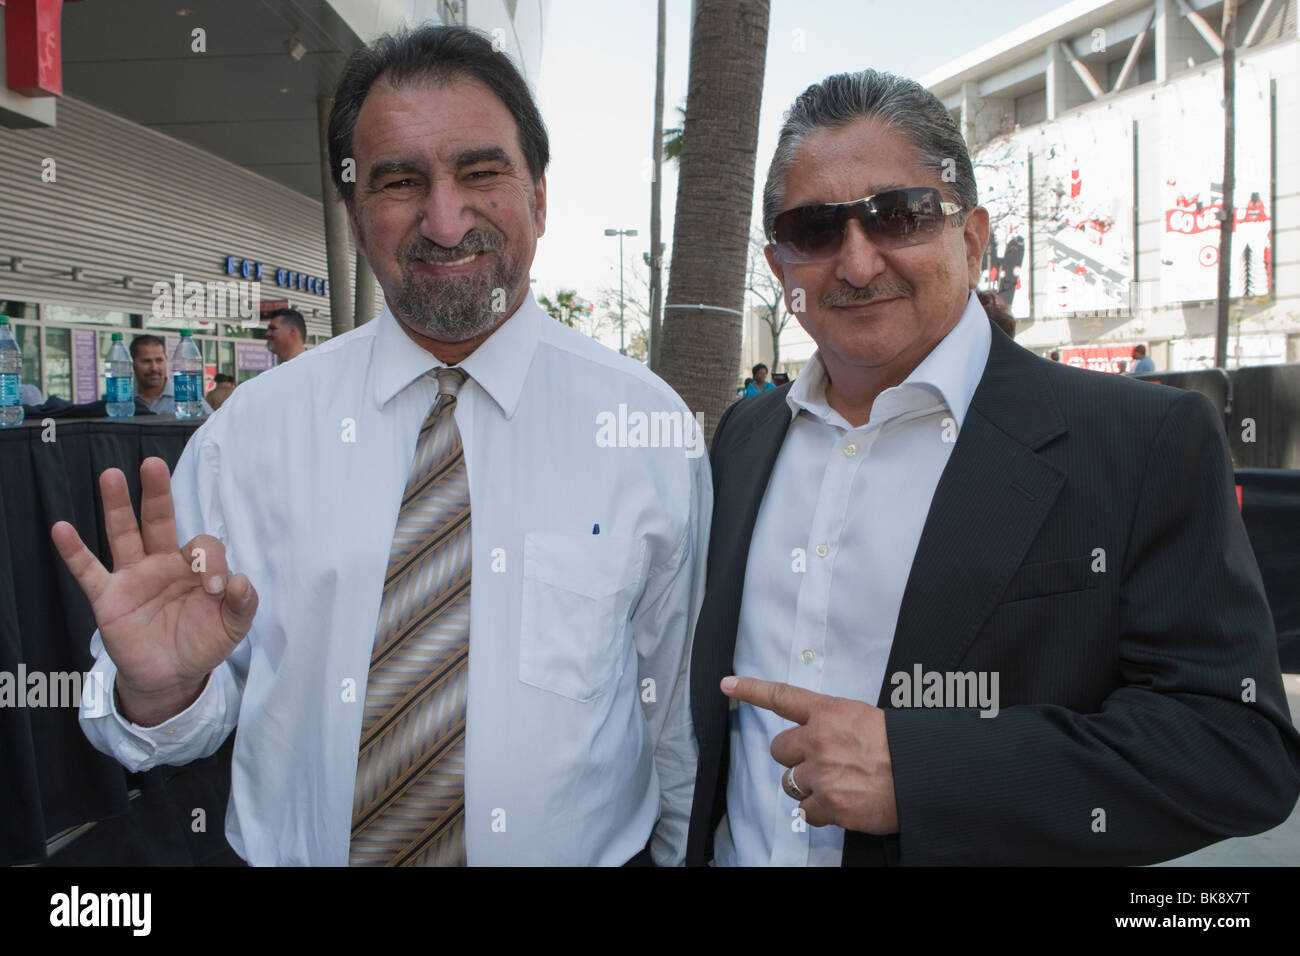 Johnny Beyrooty and Frank Espinoza at the Israel Vazquez vs Rafael Marquez Press Conference 3/13/10 - Stock Image